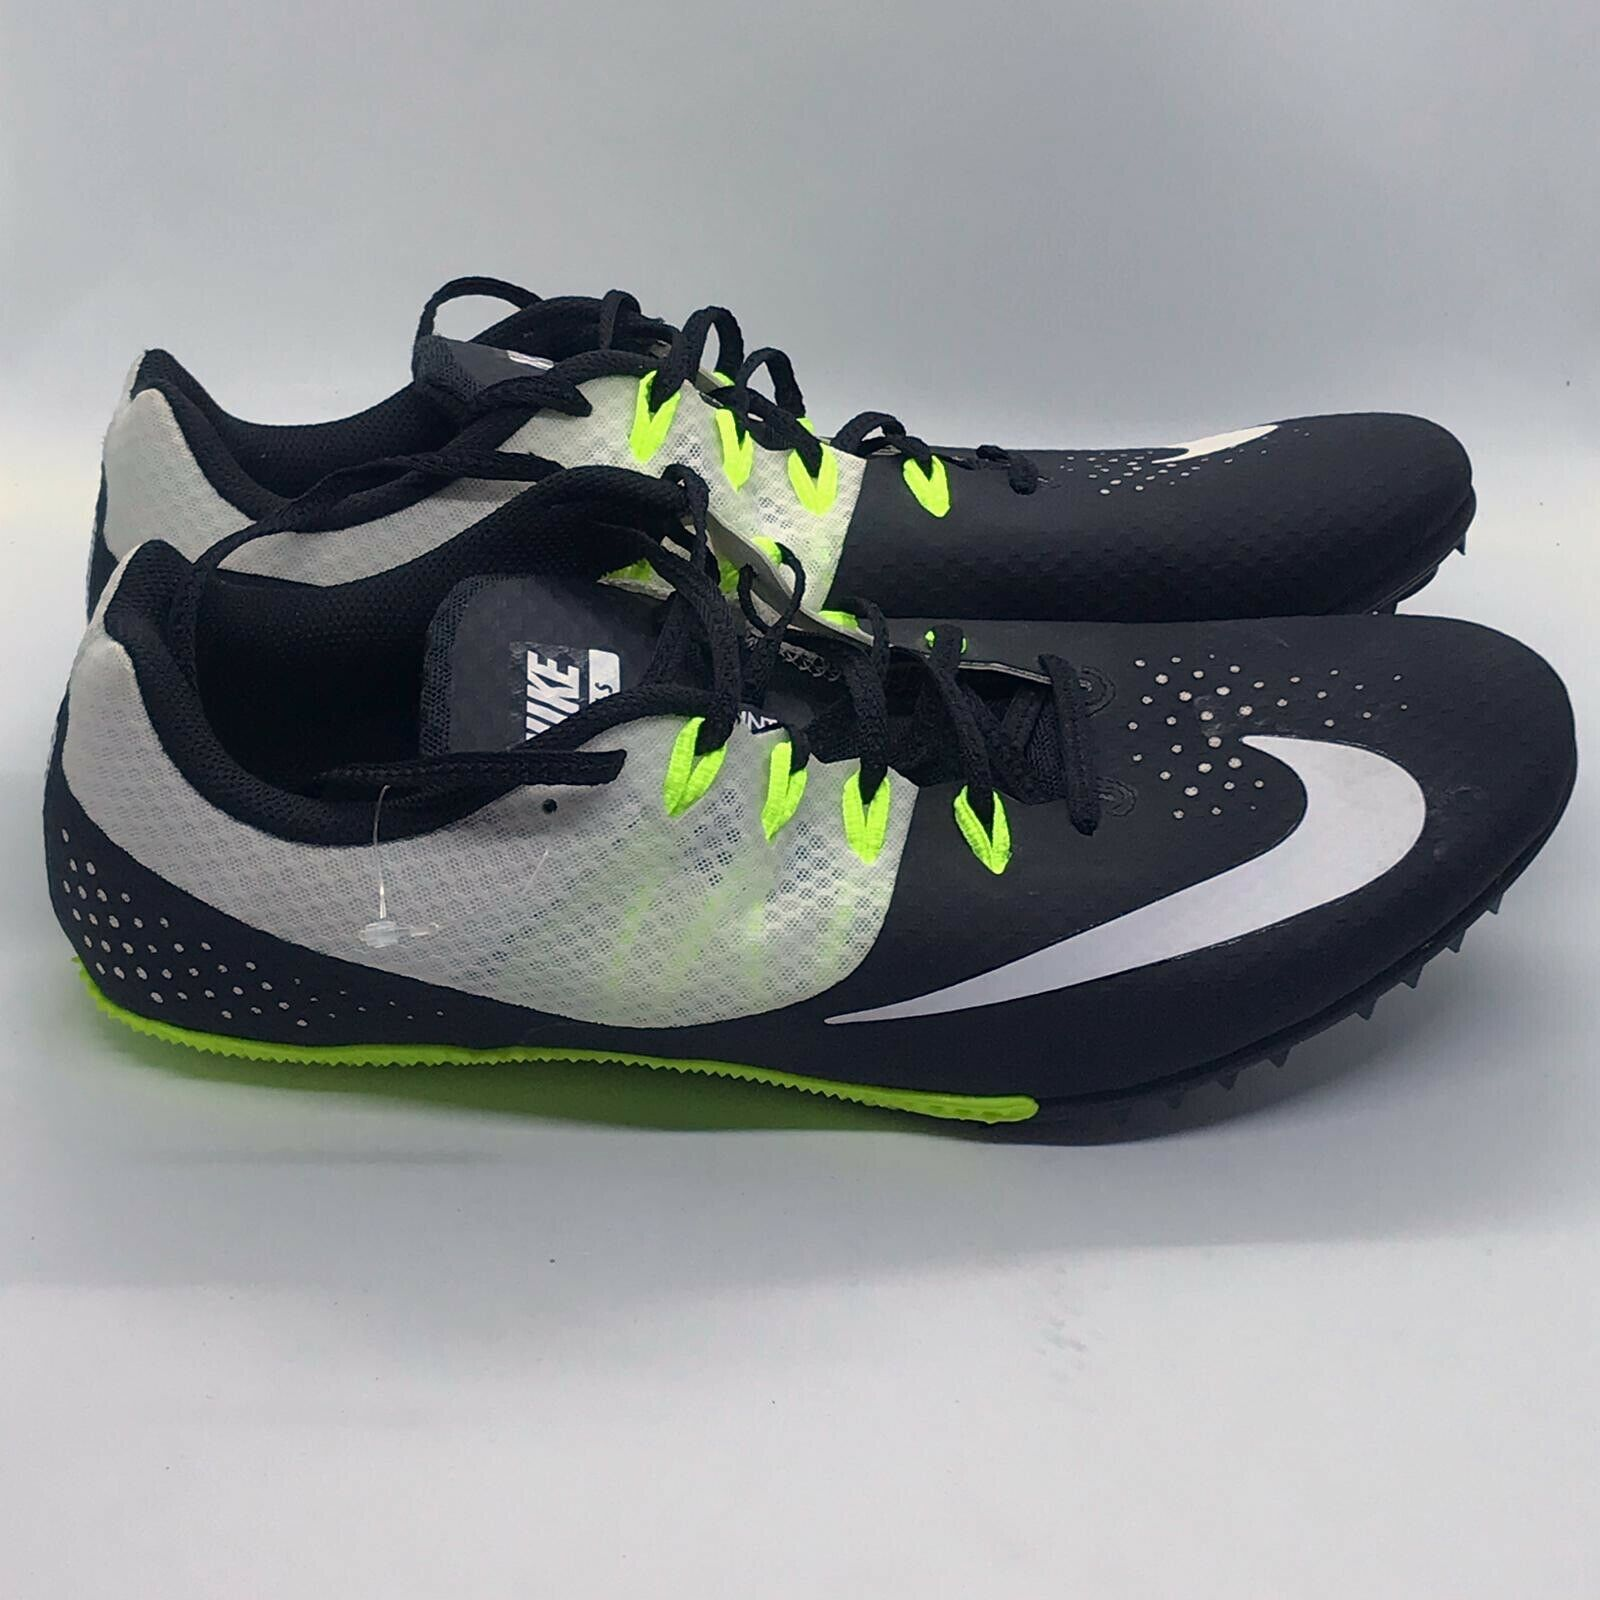 Nike Rival S 8 Sprint Racing Track shoes Black White Men's 806554-010 SZ 12